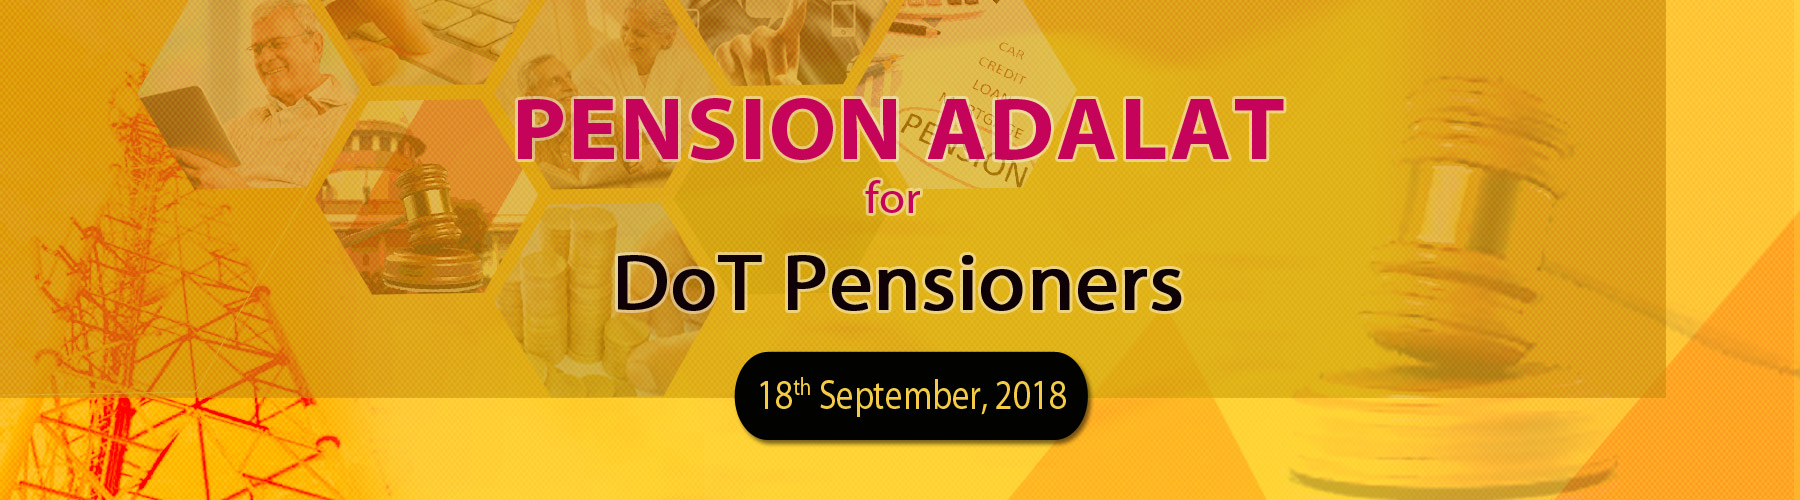 Pension Adalat for DoT Pensioners